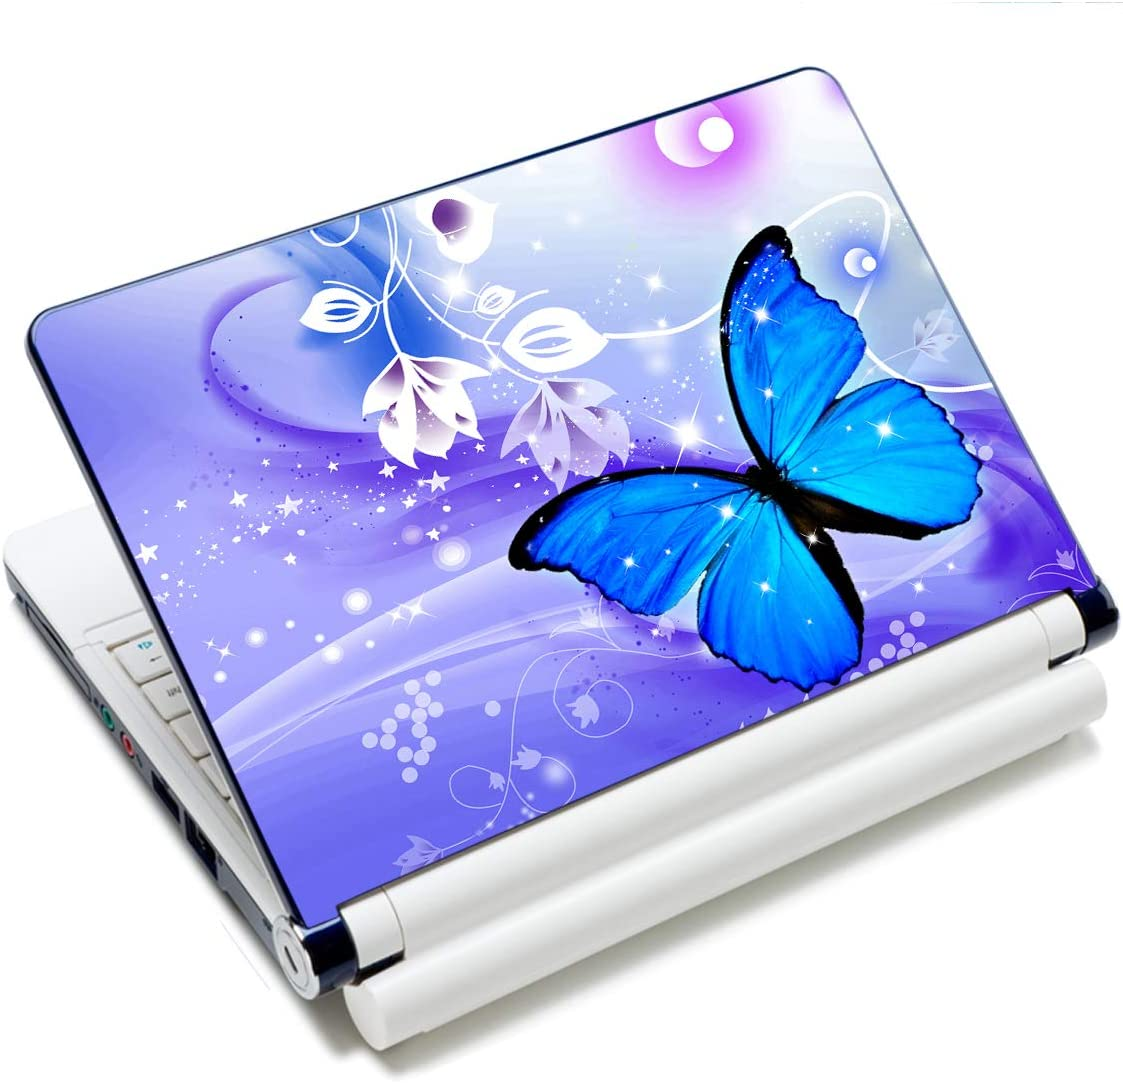 "Laptop Skin Vinyl Sticker Decal, 12"" 13"" 13.3"" 14"" 15"" 15.4"" 15.6 inch Laptop Skin Sticker Cover Art Decal Protector Fits HP Dell Lenovo Compaq Apple Asus Acer (Blue Butterfly)"